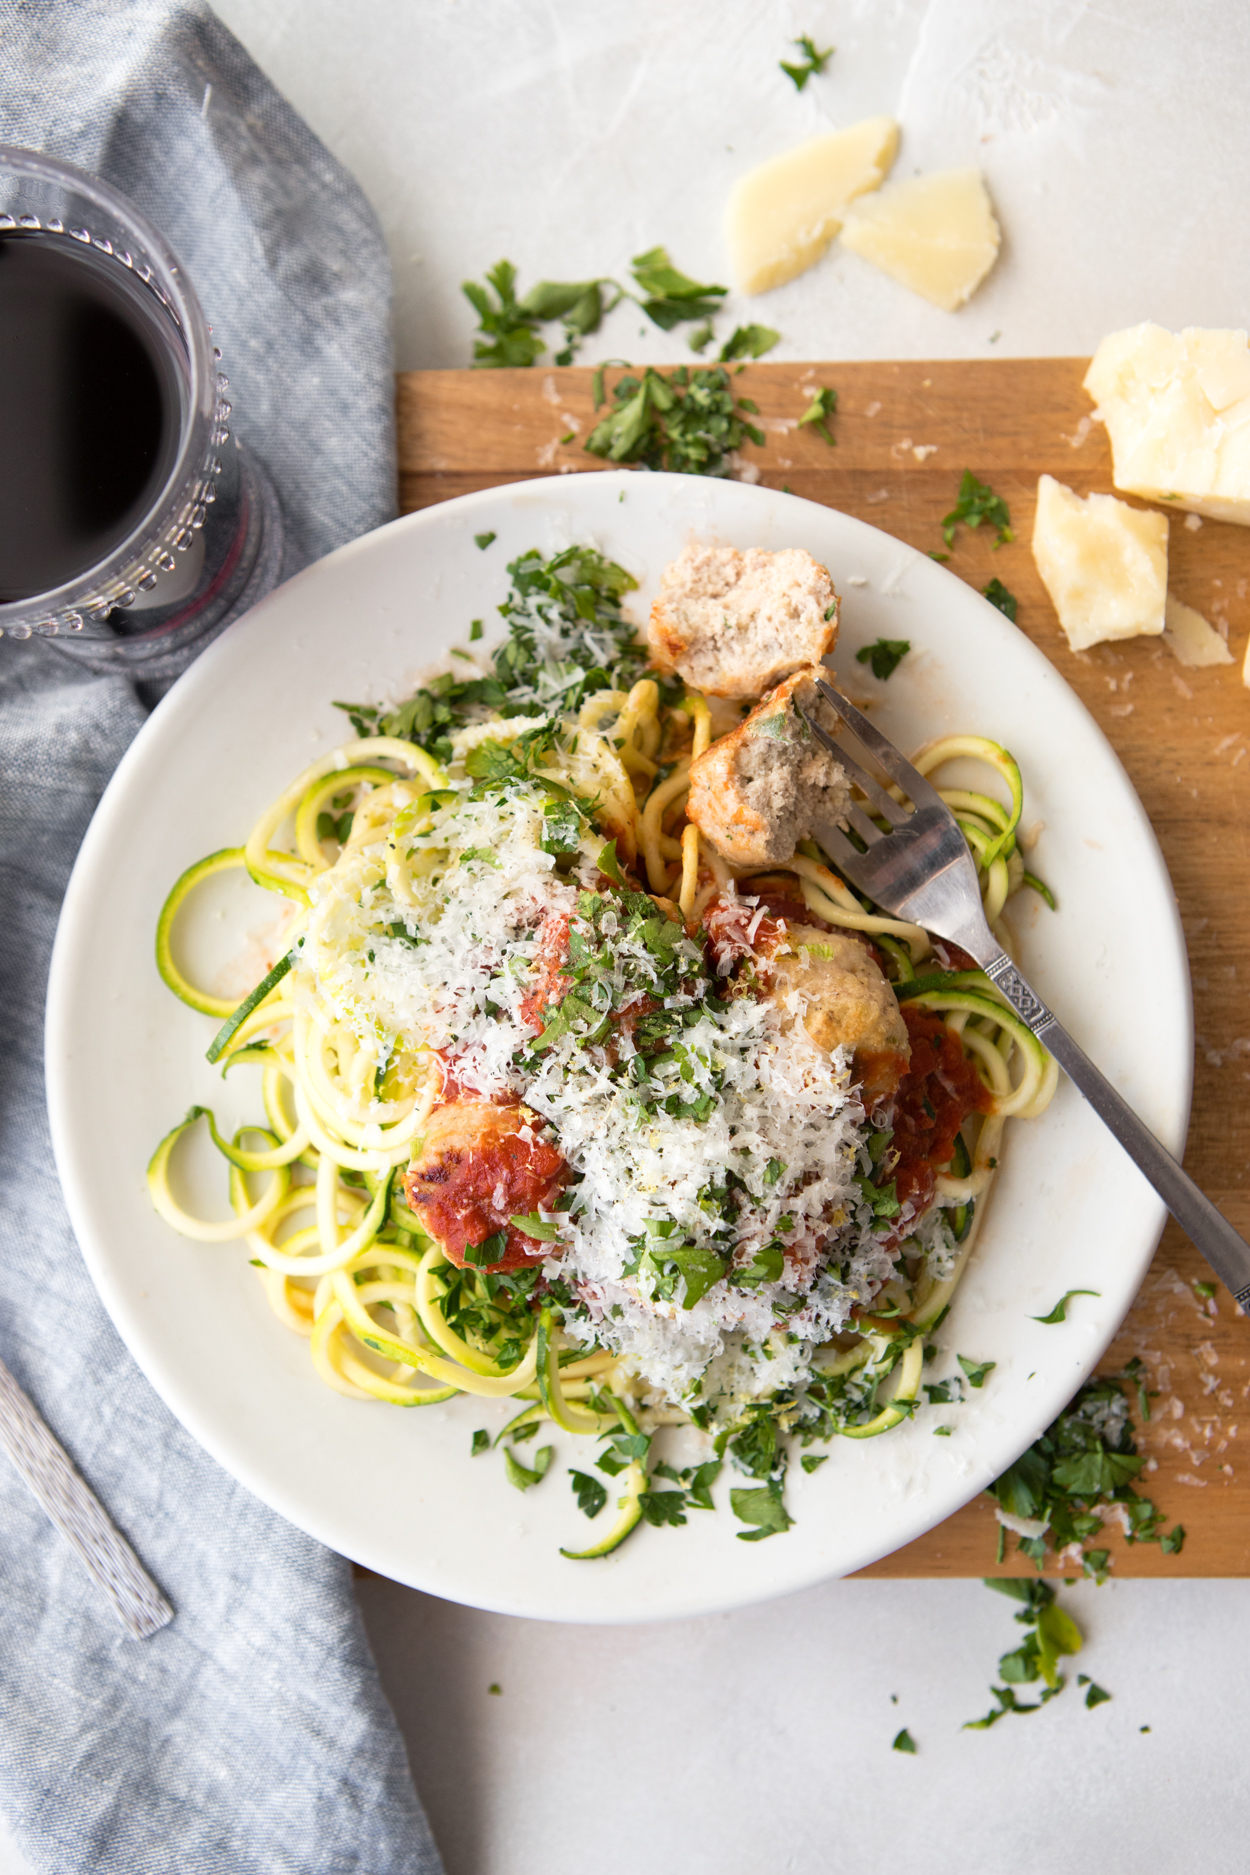 healthy turkey meatballs and zucchini noodles and marinara sauce on a white plate set on a wooden board with a glass of red wine